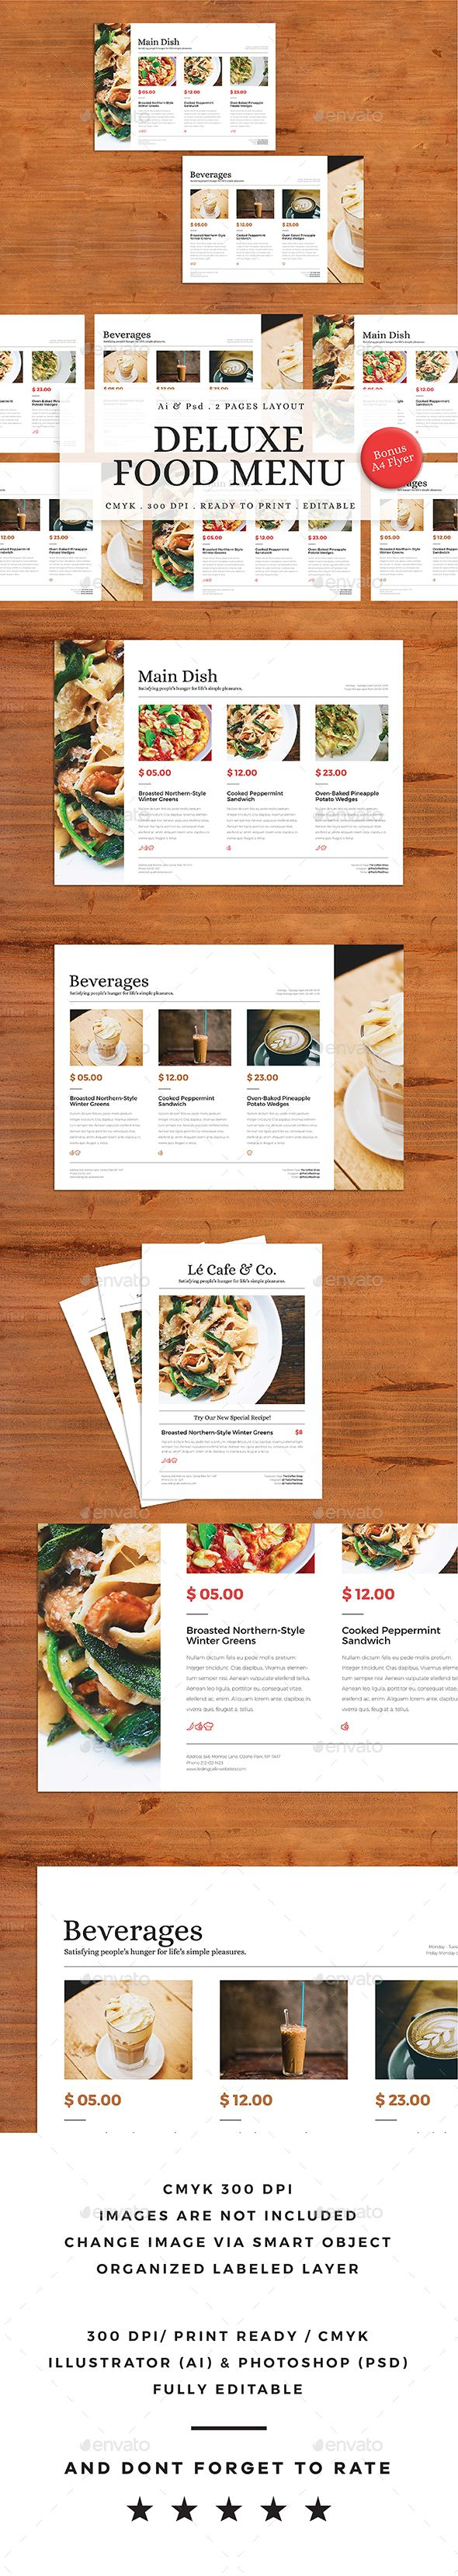 Restaurant Menu Design Ideas restaurant menu ideas blinoff Deluxe Food Menu A4 Flyer Menu Food Menu Designrestaurant